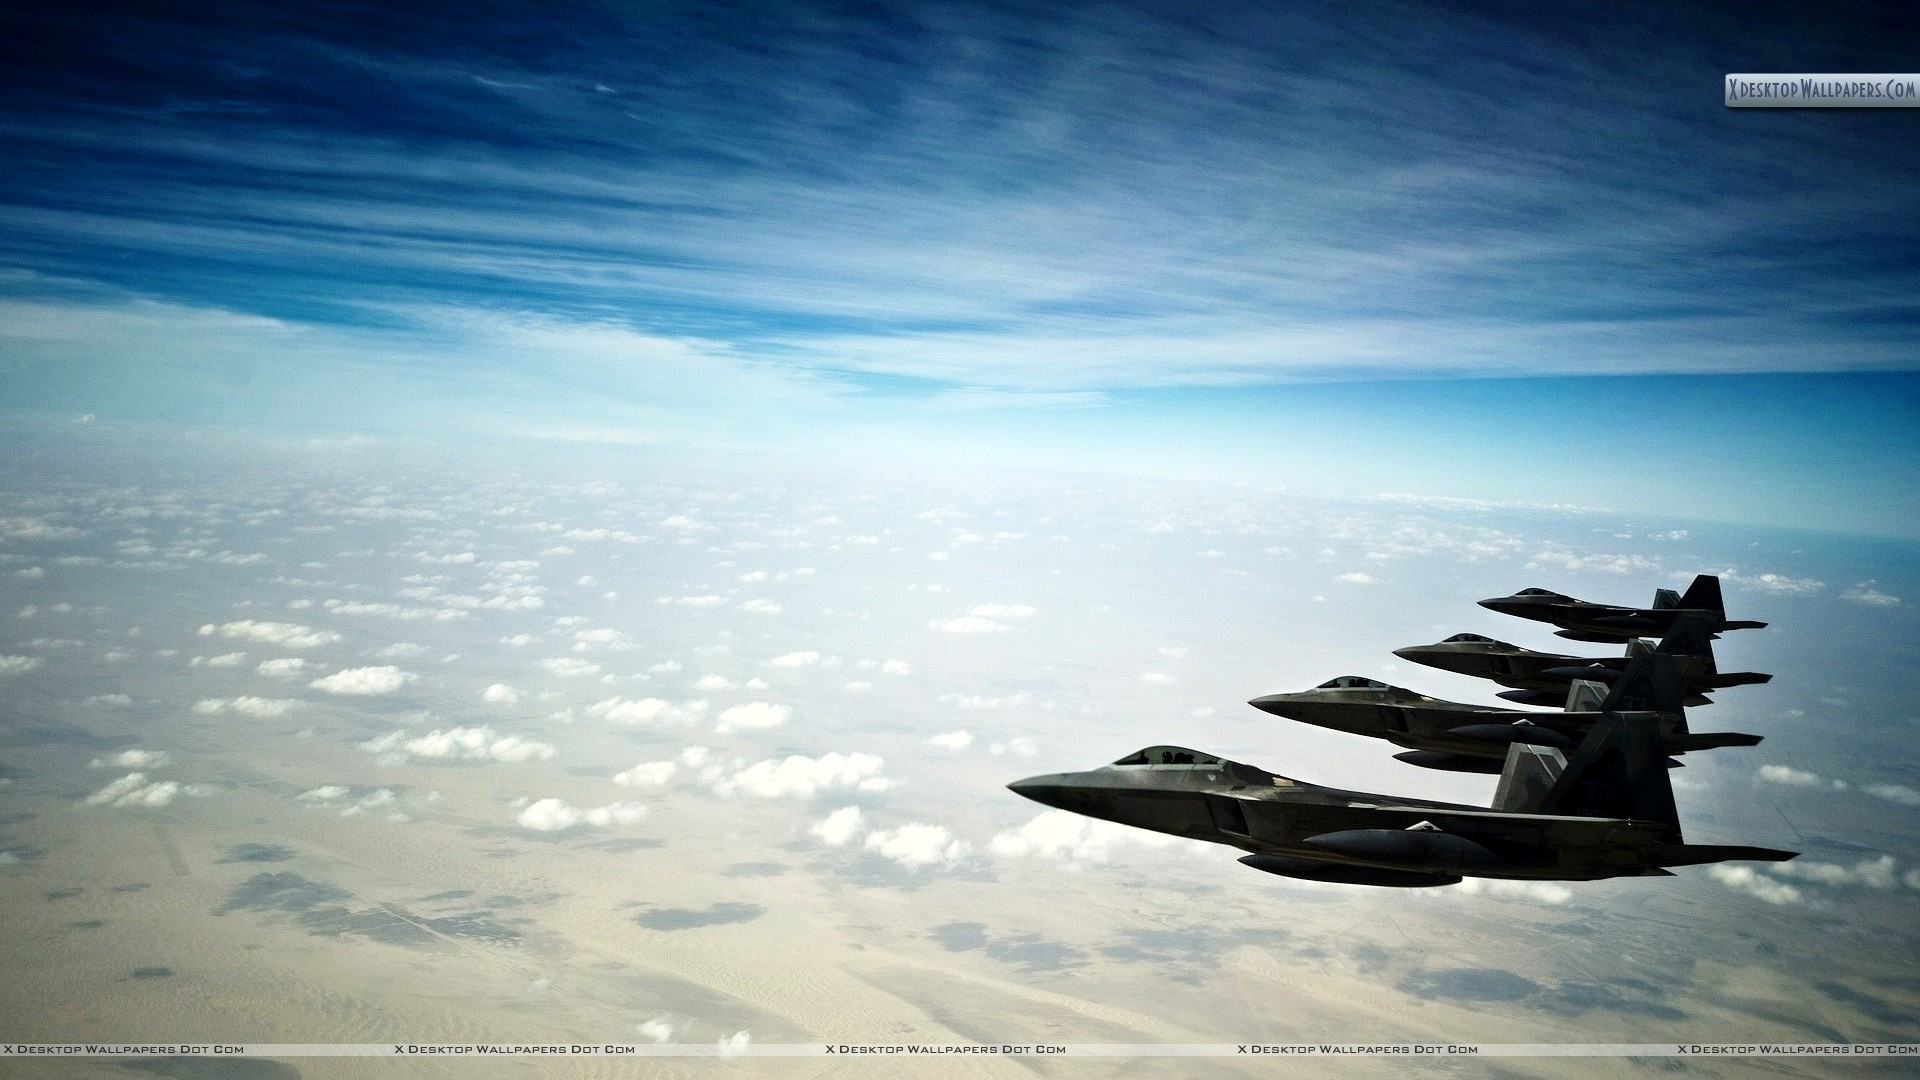 F 22 raptor stealth fighters wallpaper you are viewing wallpaper voltagebd Choice Image